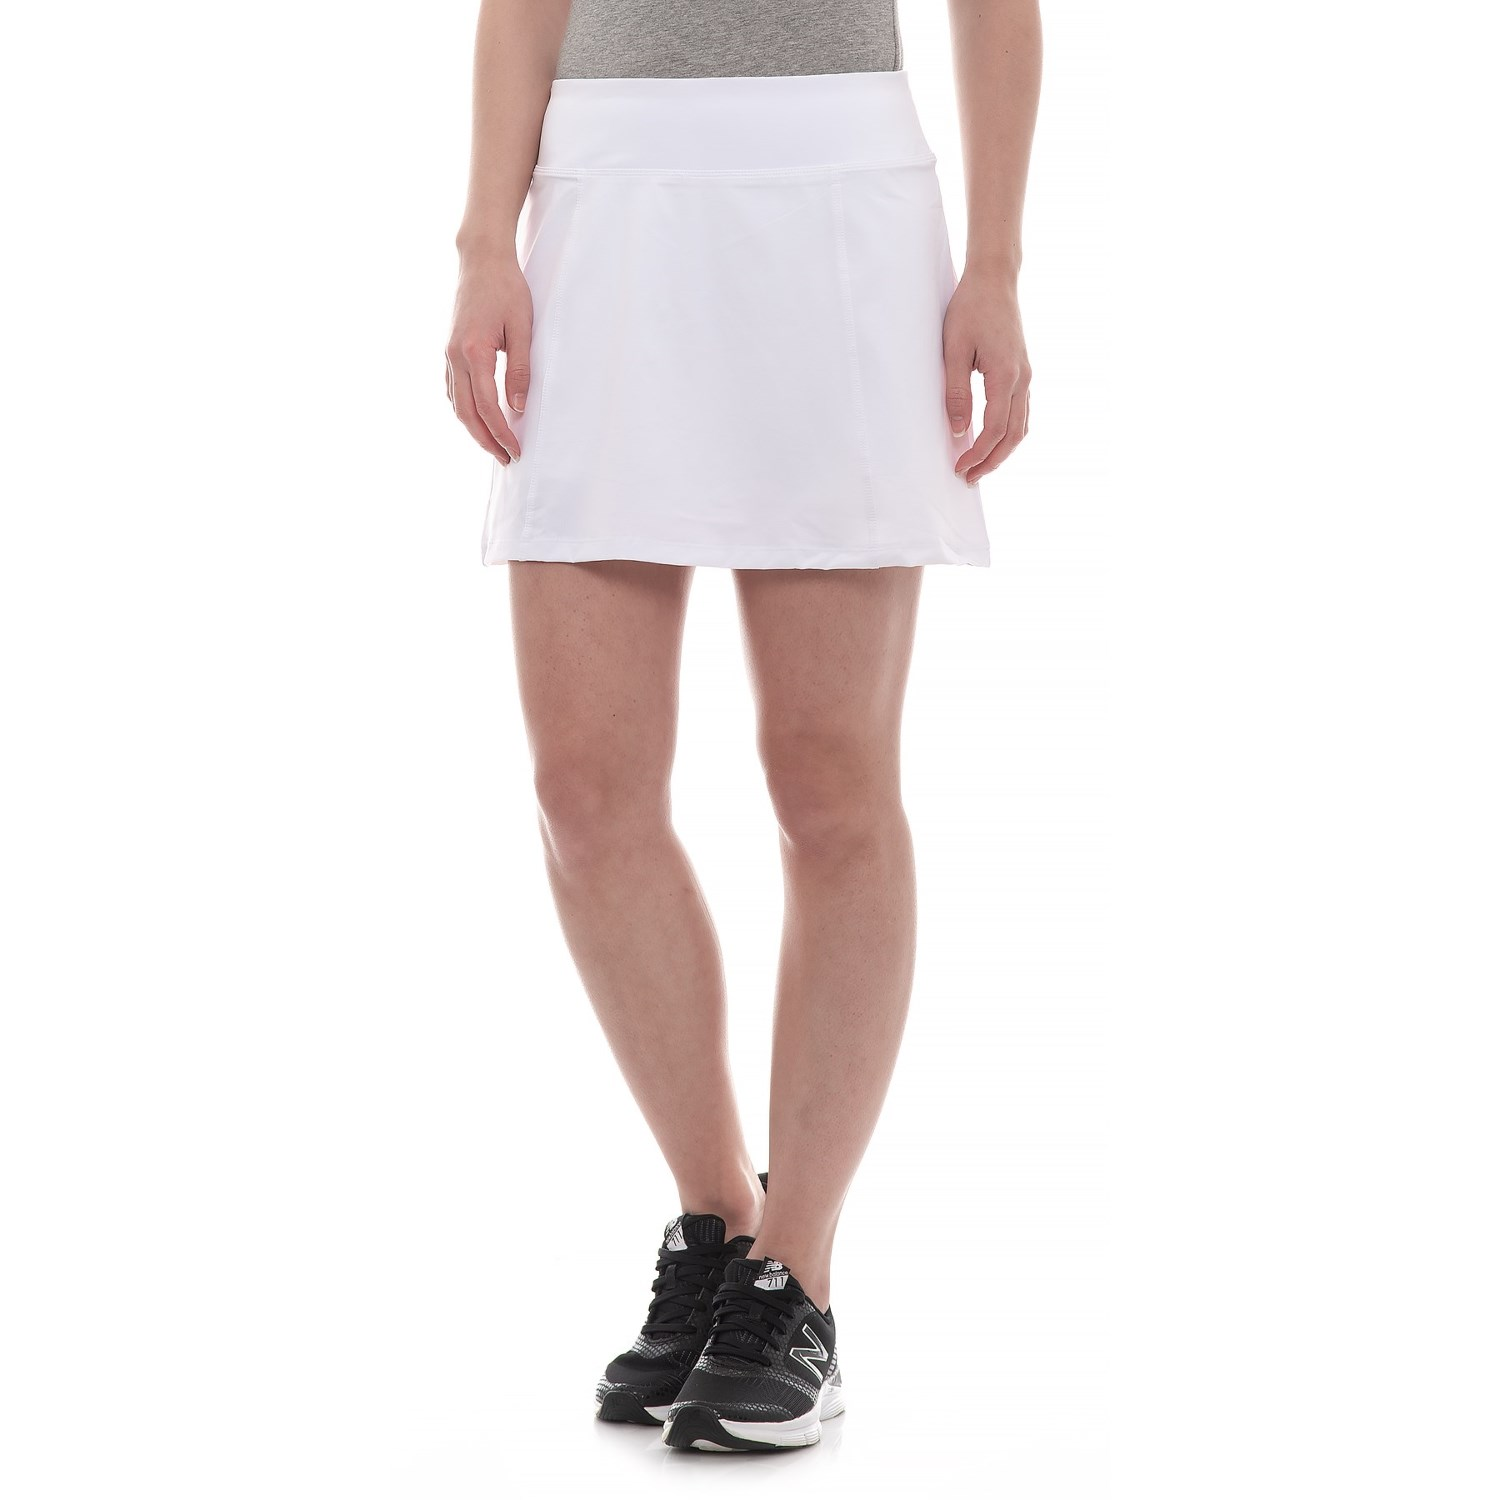 50954c3764 Womens Pleated Tennis Skirts – DACC